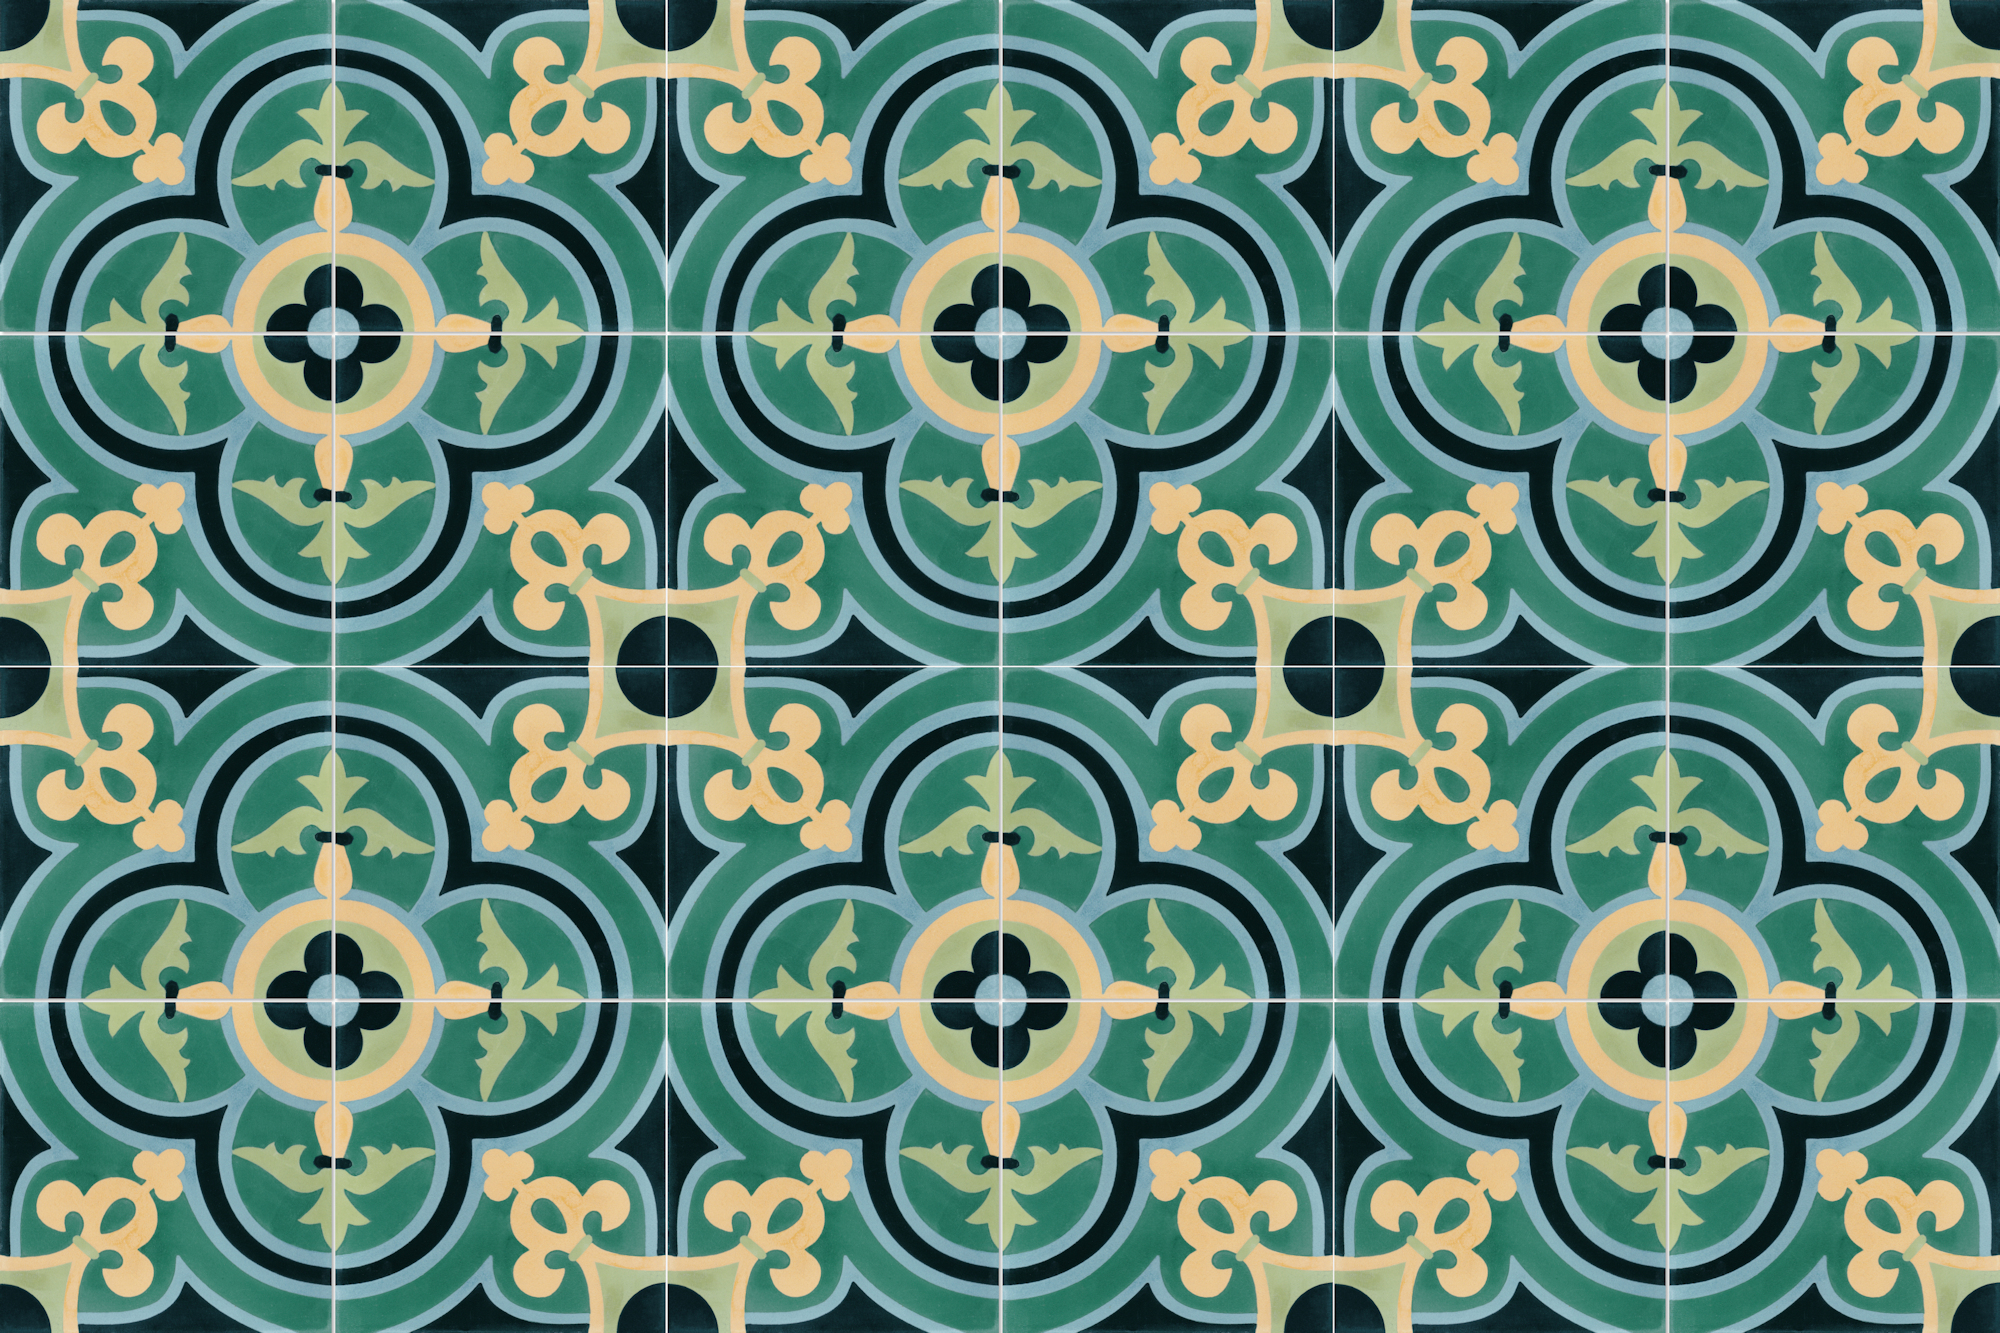 layout of 24 green and yellow french inspired cement tiles